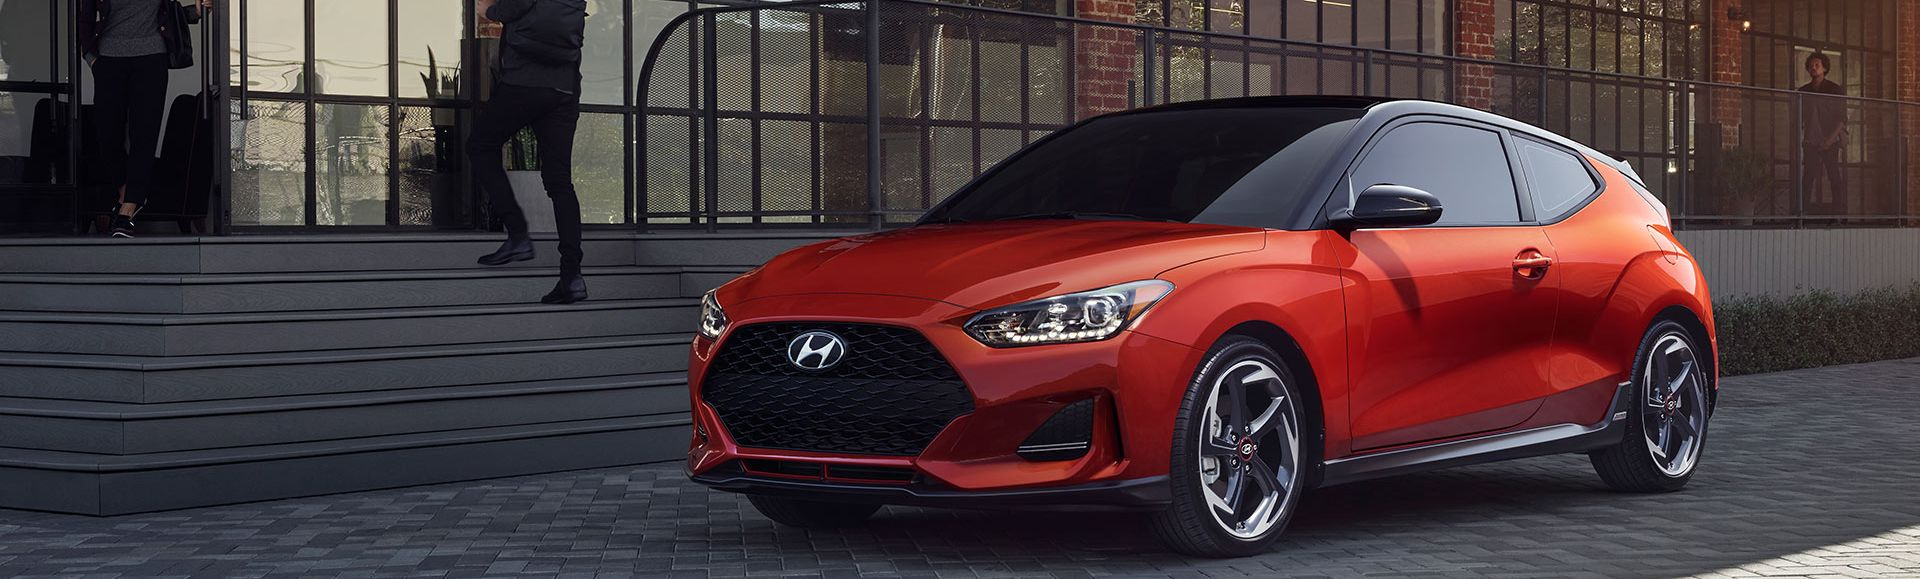 2019 Hyundai Veloster Leasing near Woodbridge, VA